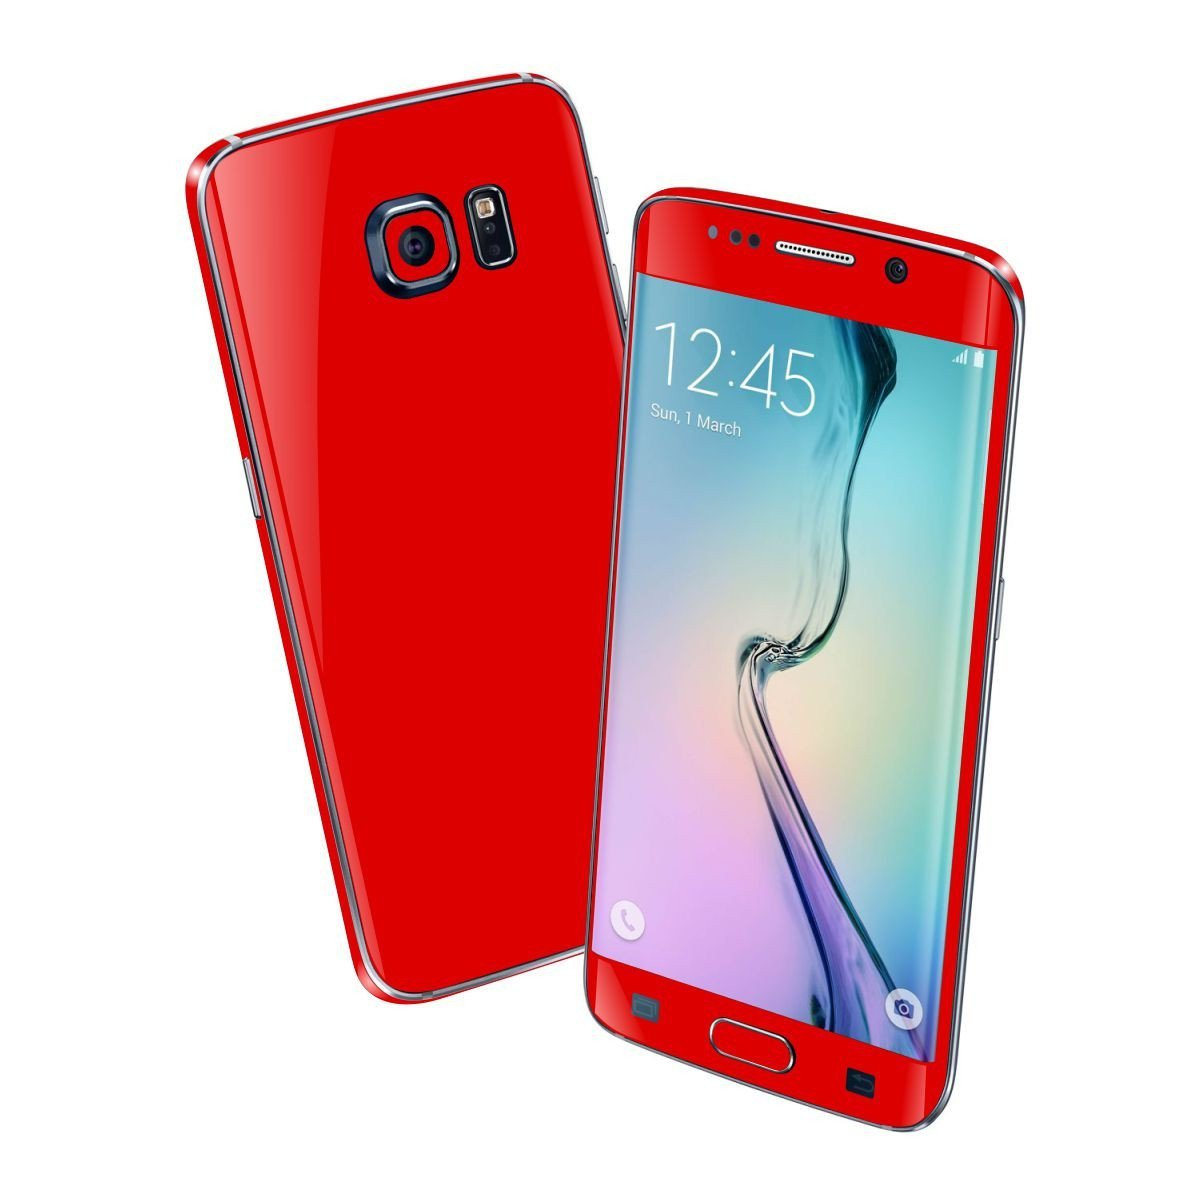 0b992c263d1 Samsung Galaxy S6 EDGE Colorful RED MATT Skin Wrap Sticker Cover Protector  Decal by EasySkinz